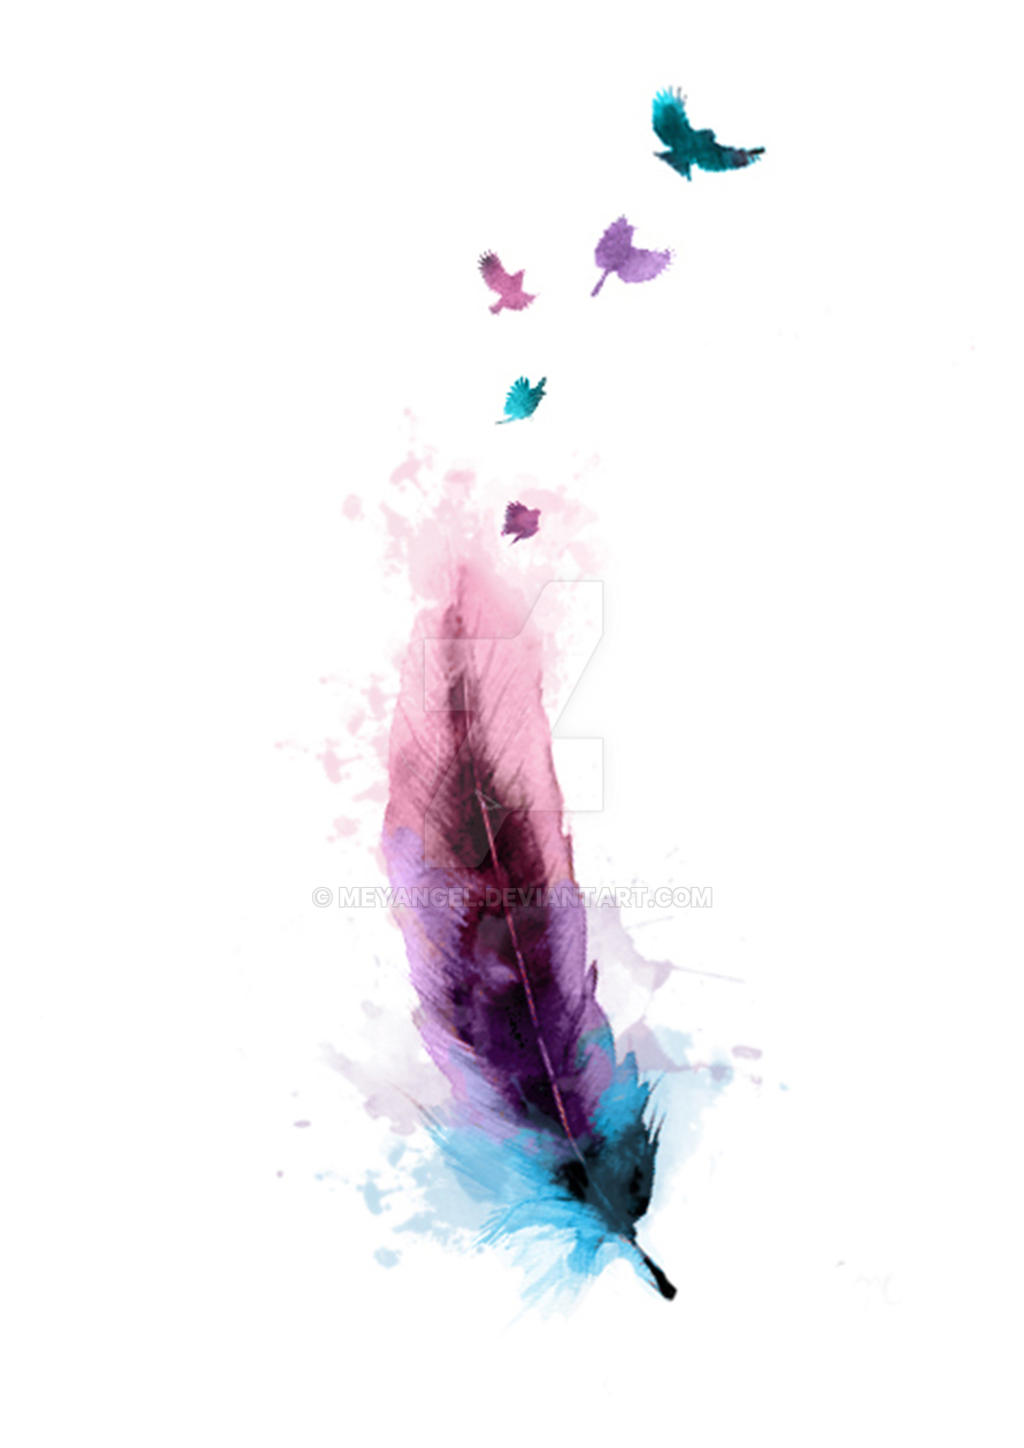 watercolour feather by meyangel on deviantart